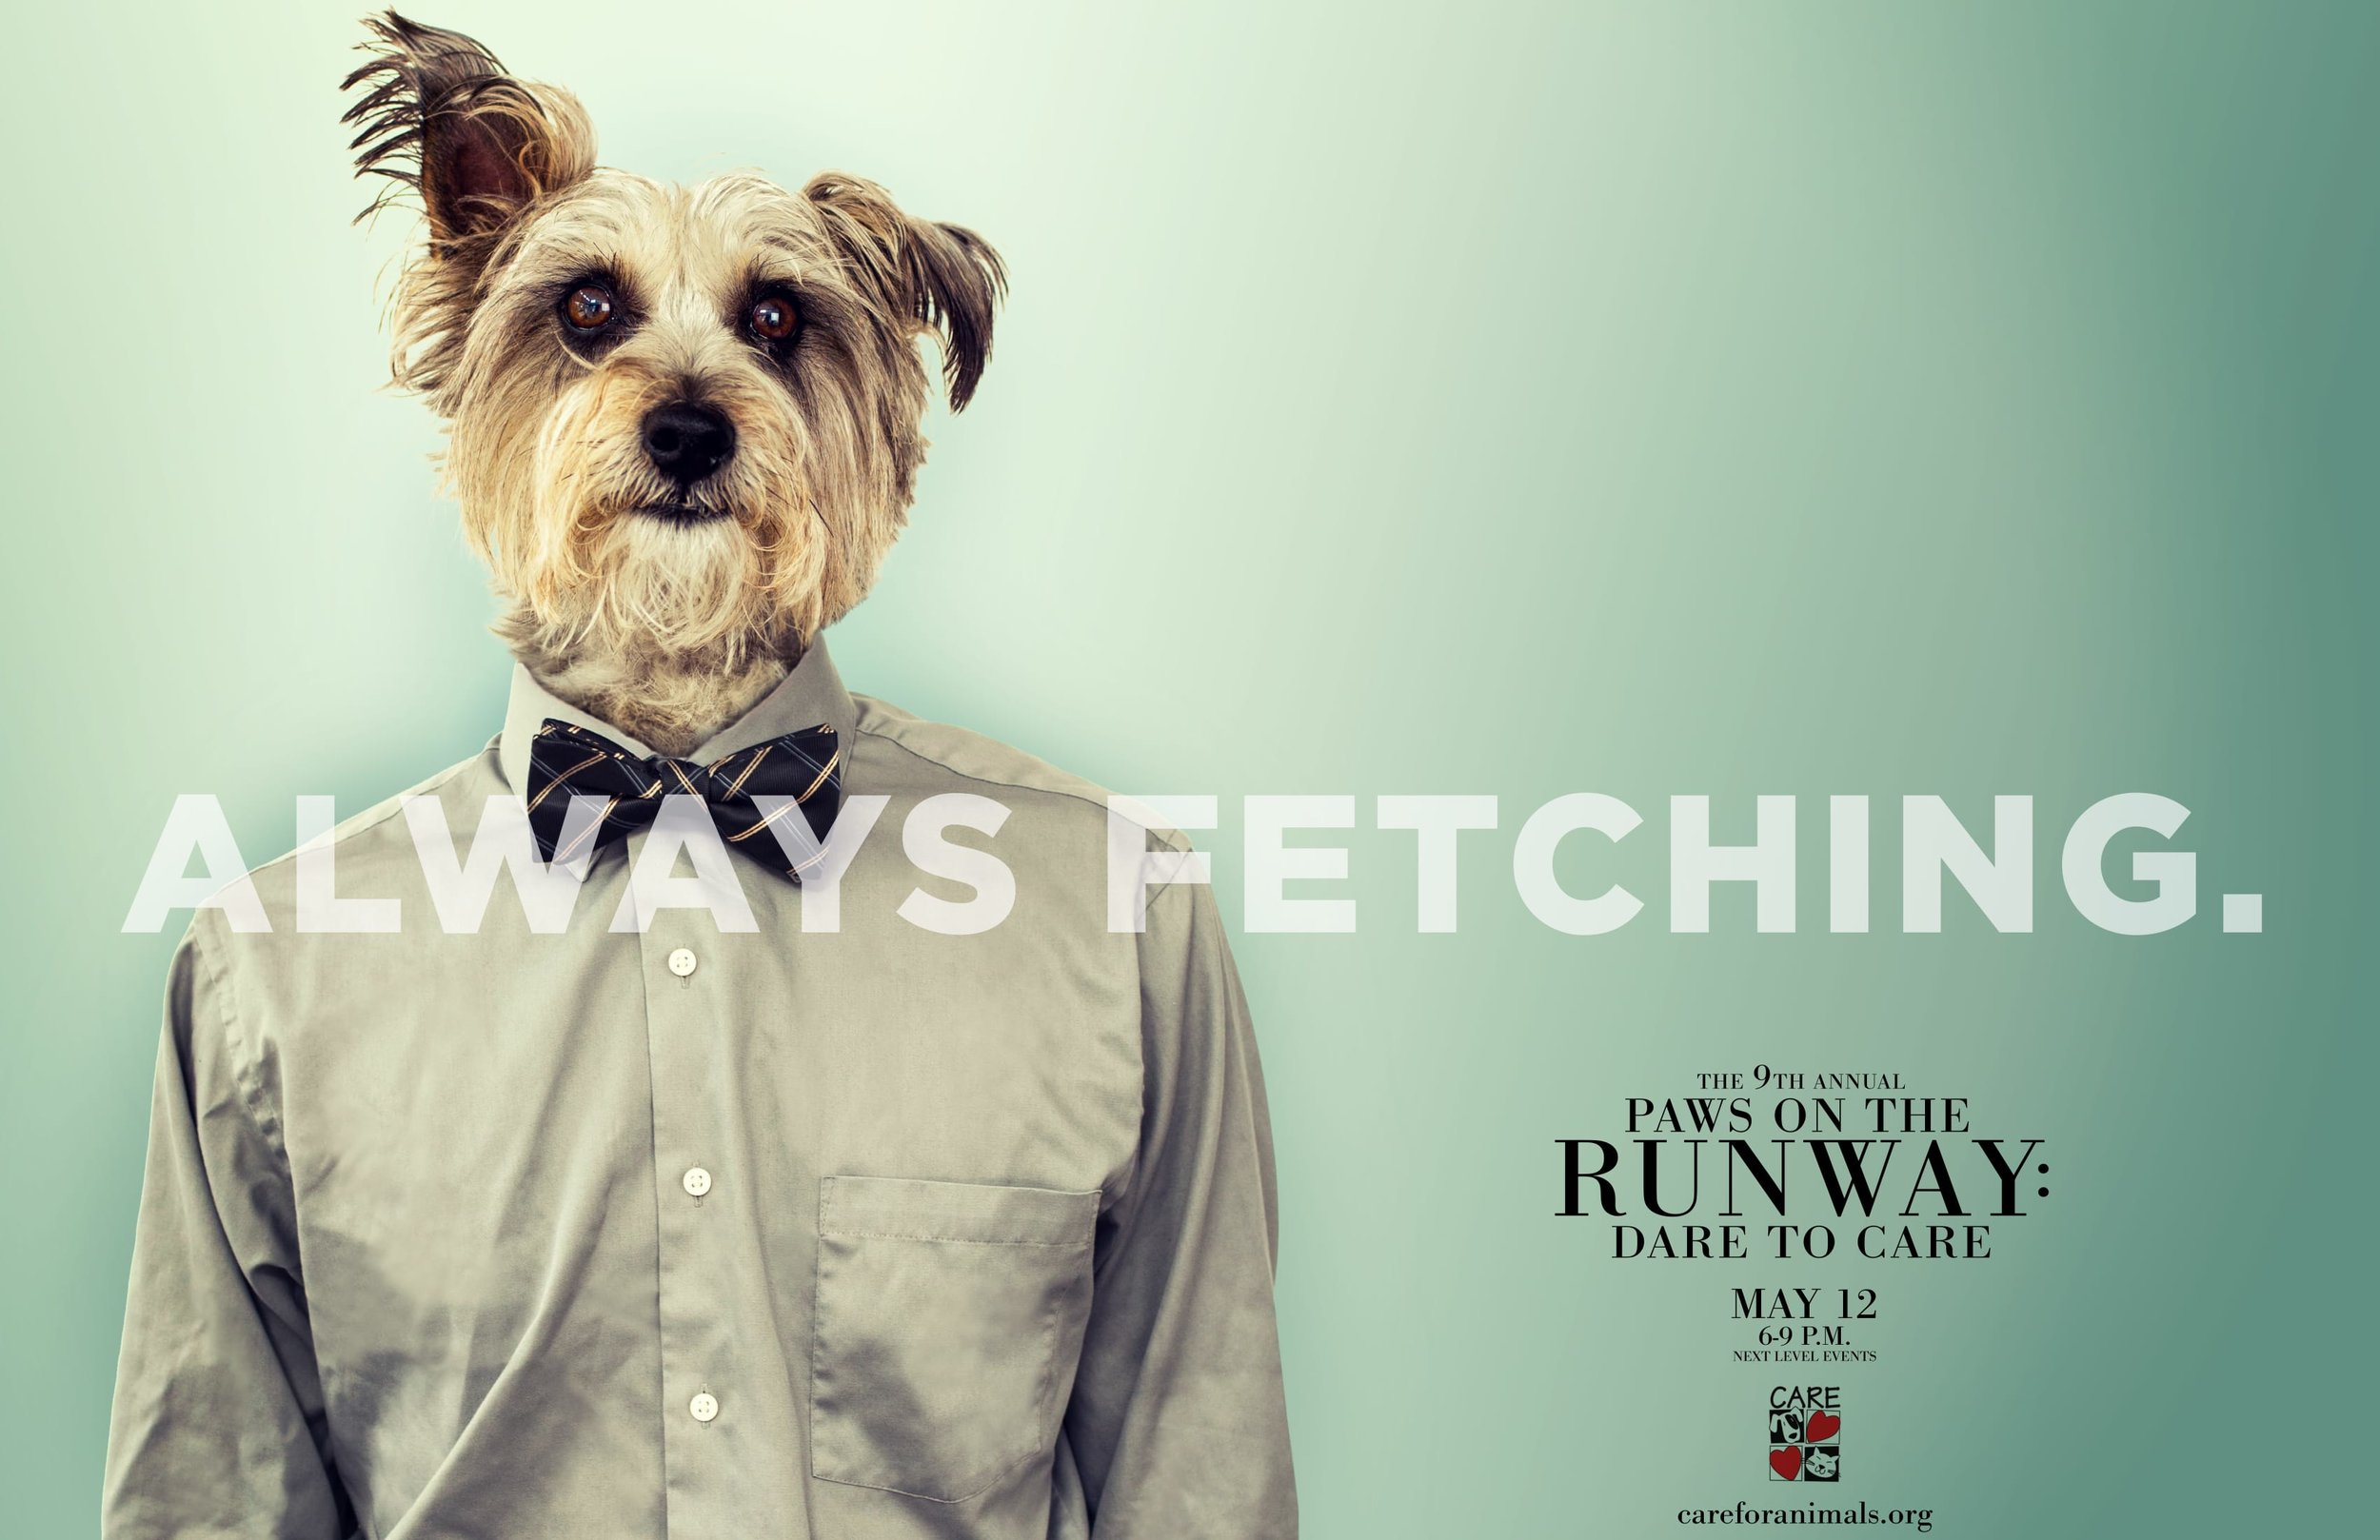 Paws on the Runway BEAR FINAL pdf-1.jpg